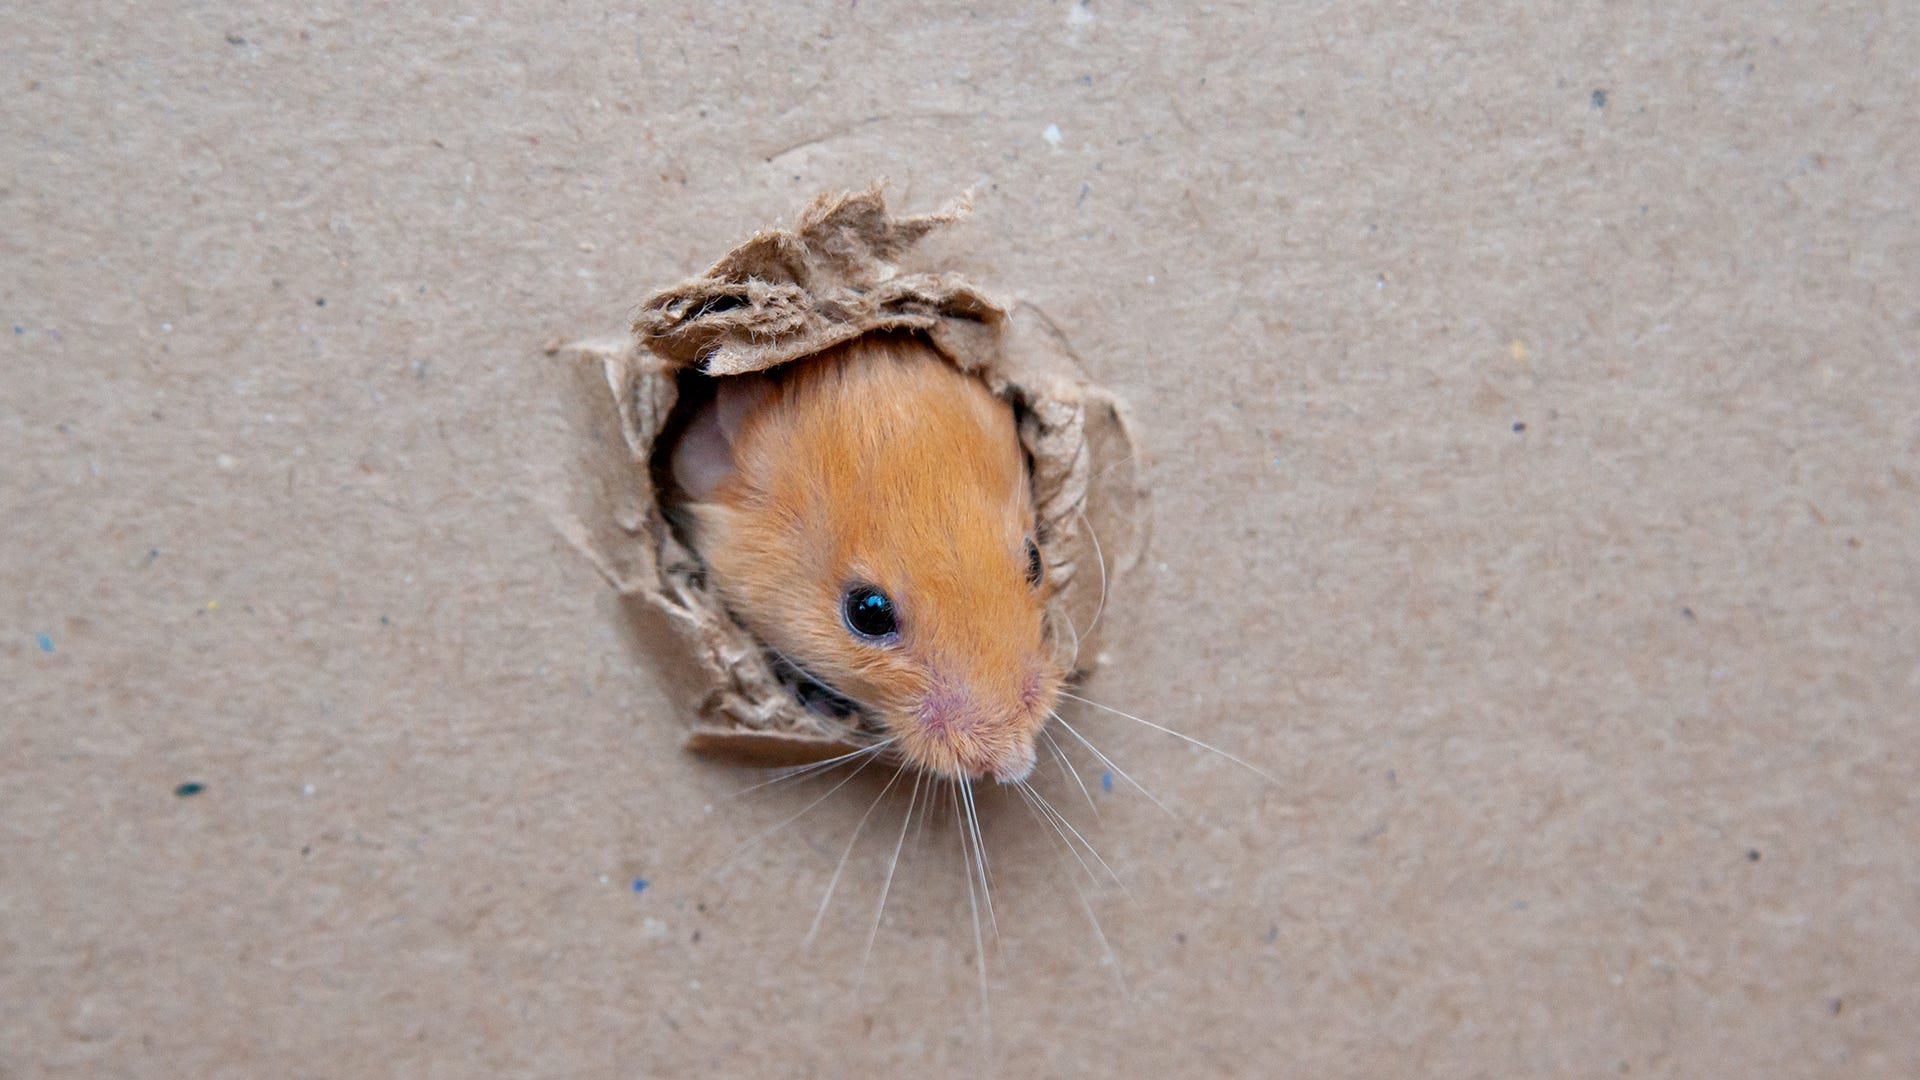 What is Sebum and How Does it Help Mice Invade